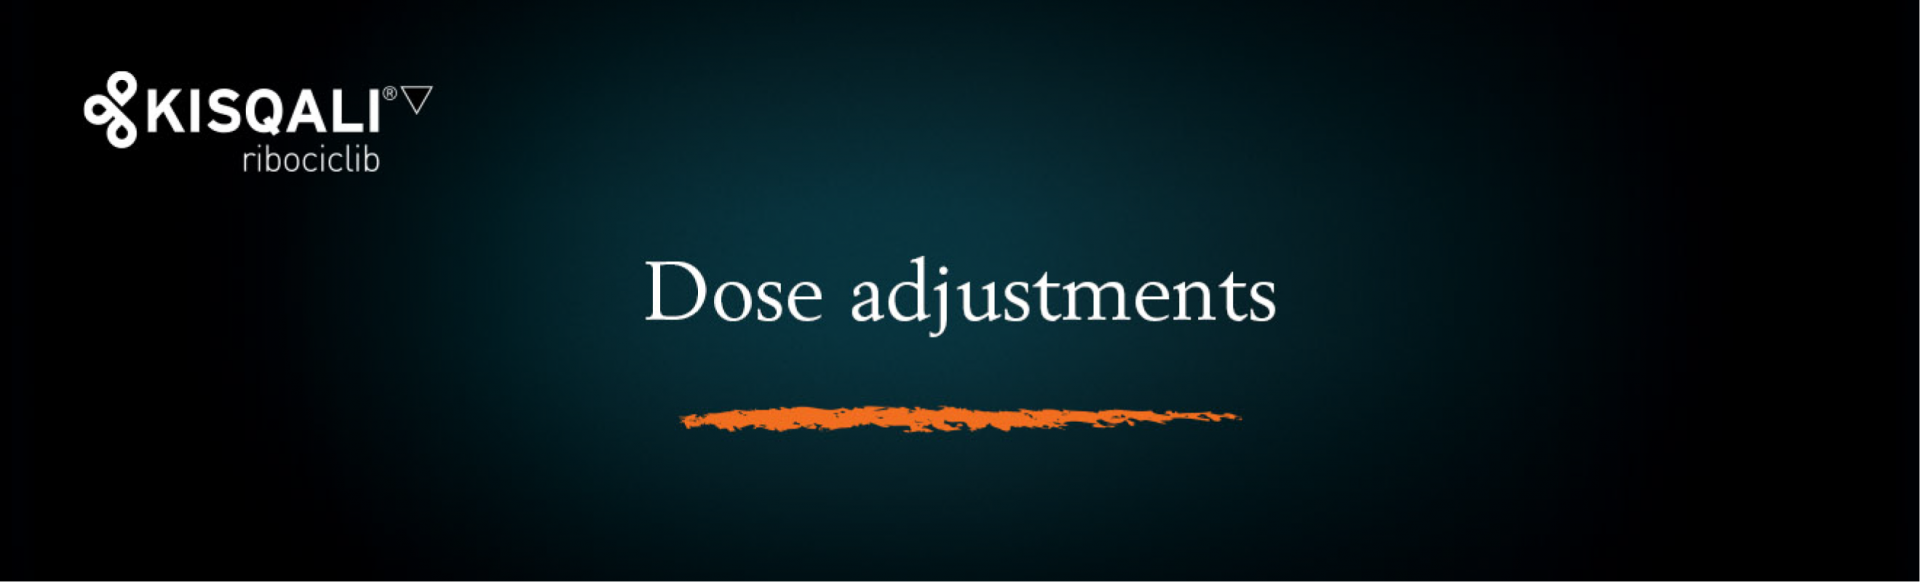 Top banner. Dosing − Dose adjustments